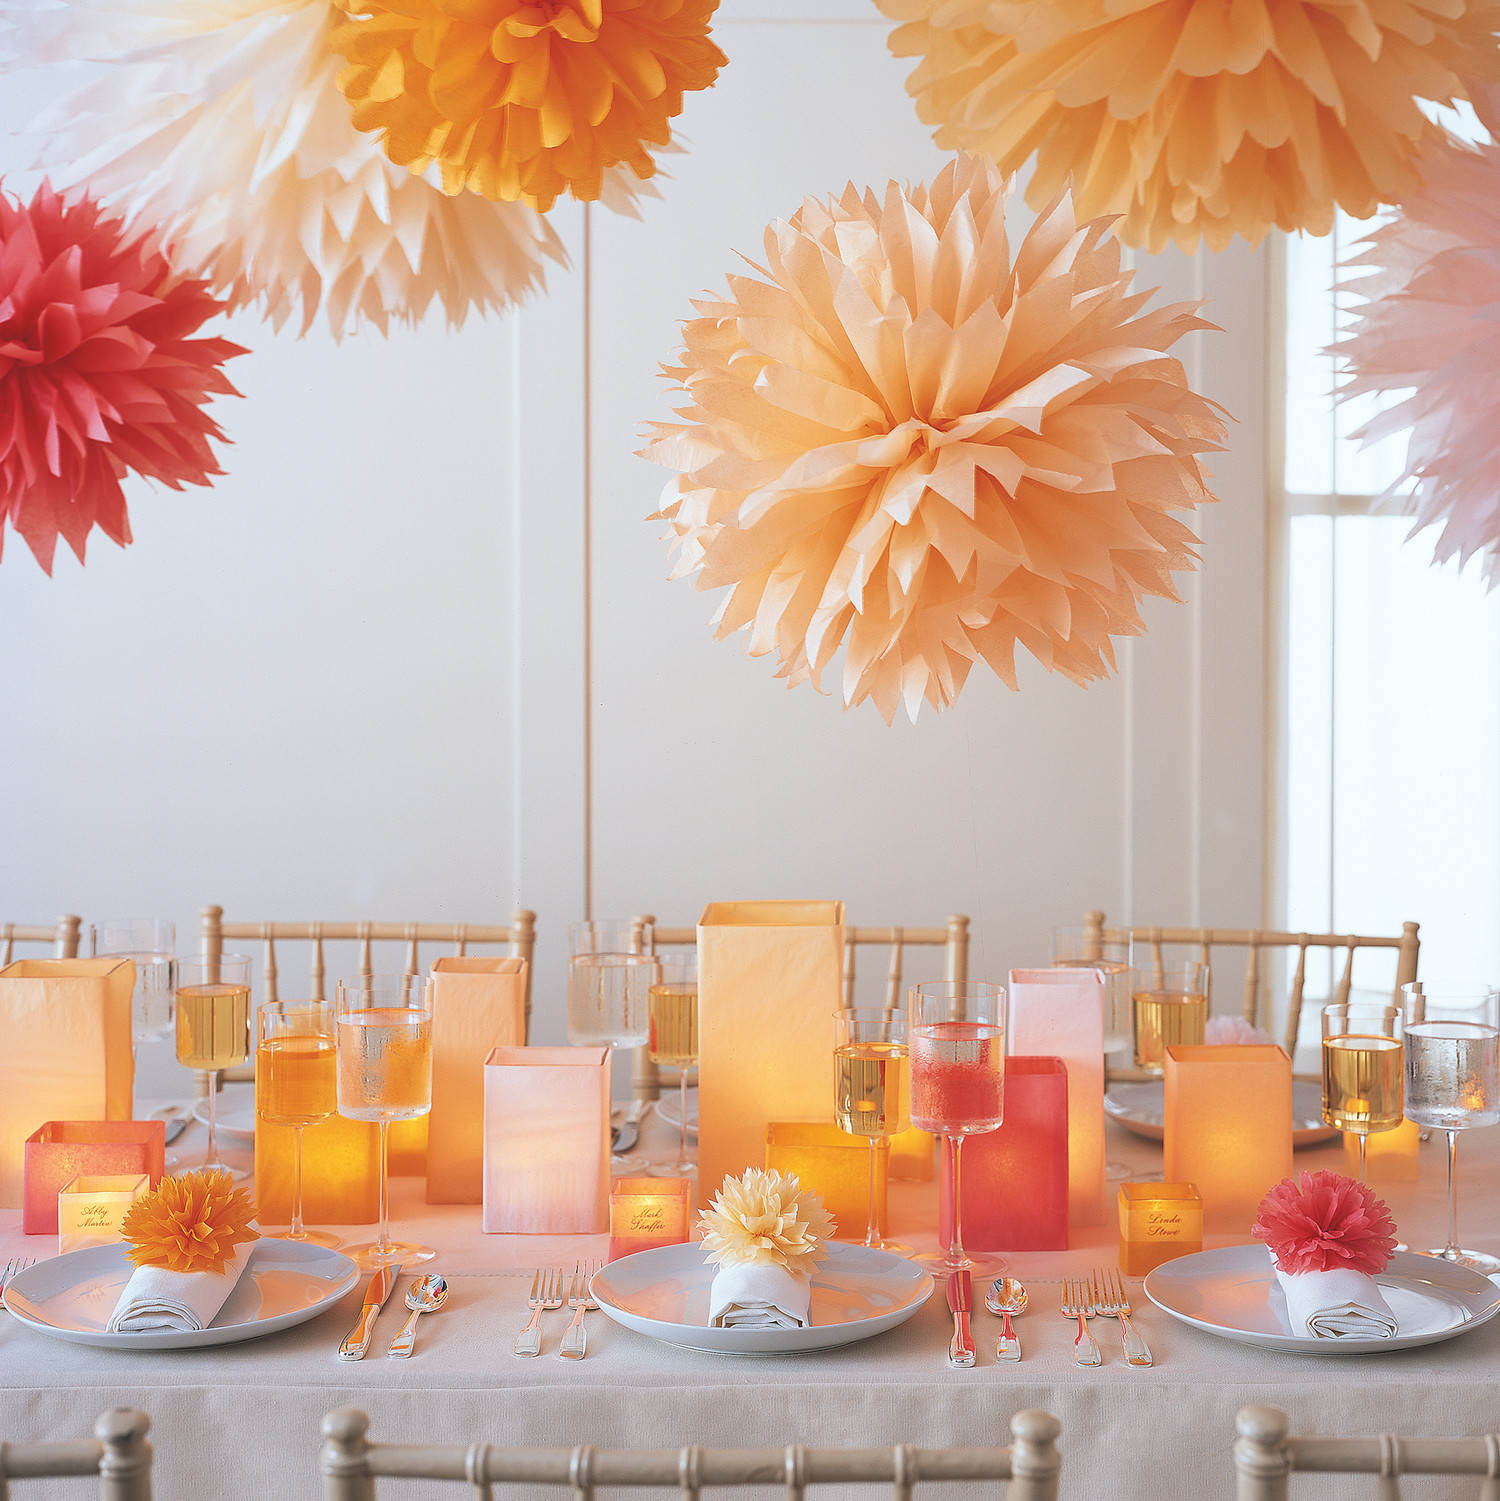 & Floral Party Decor | Martha Stewart